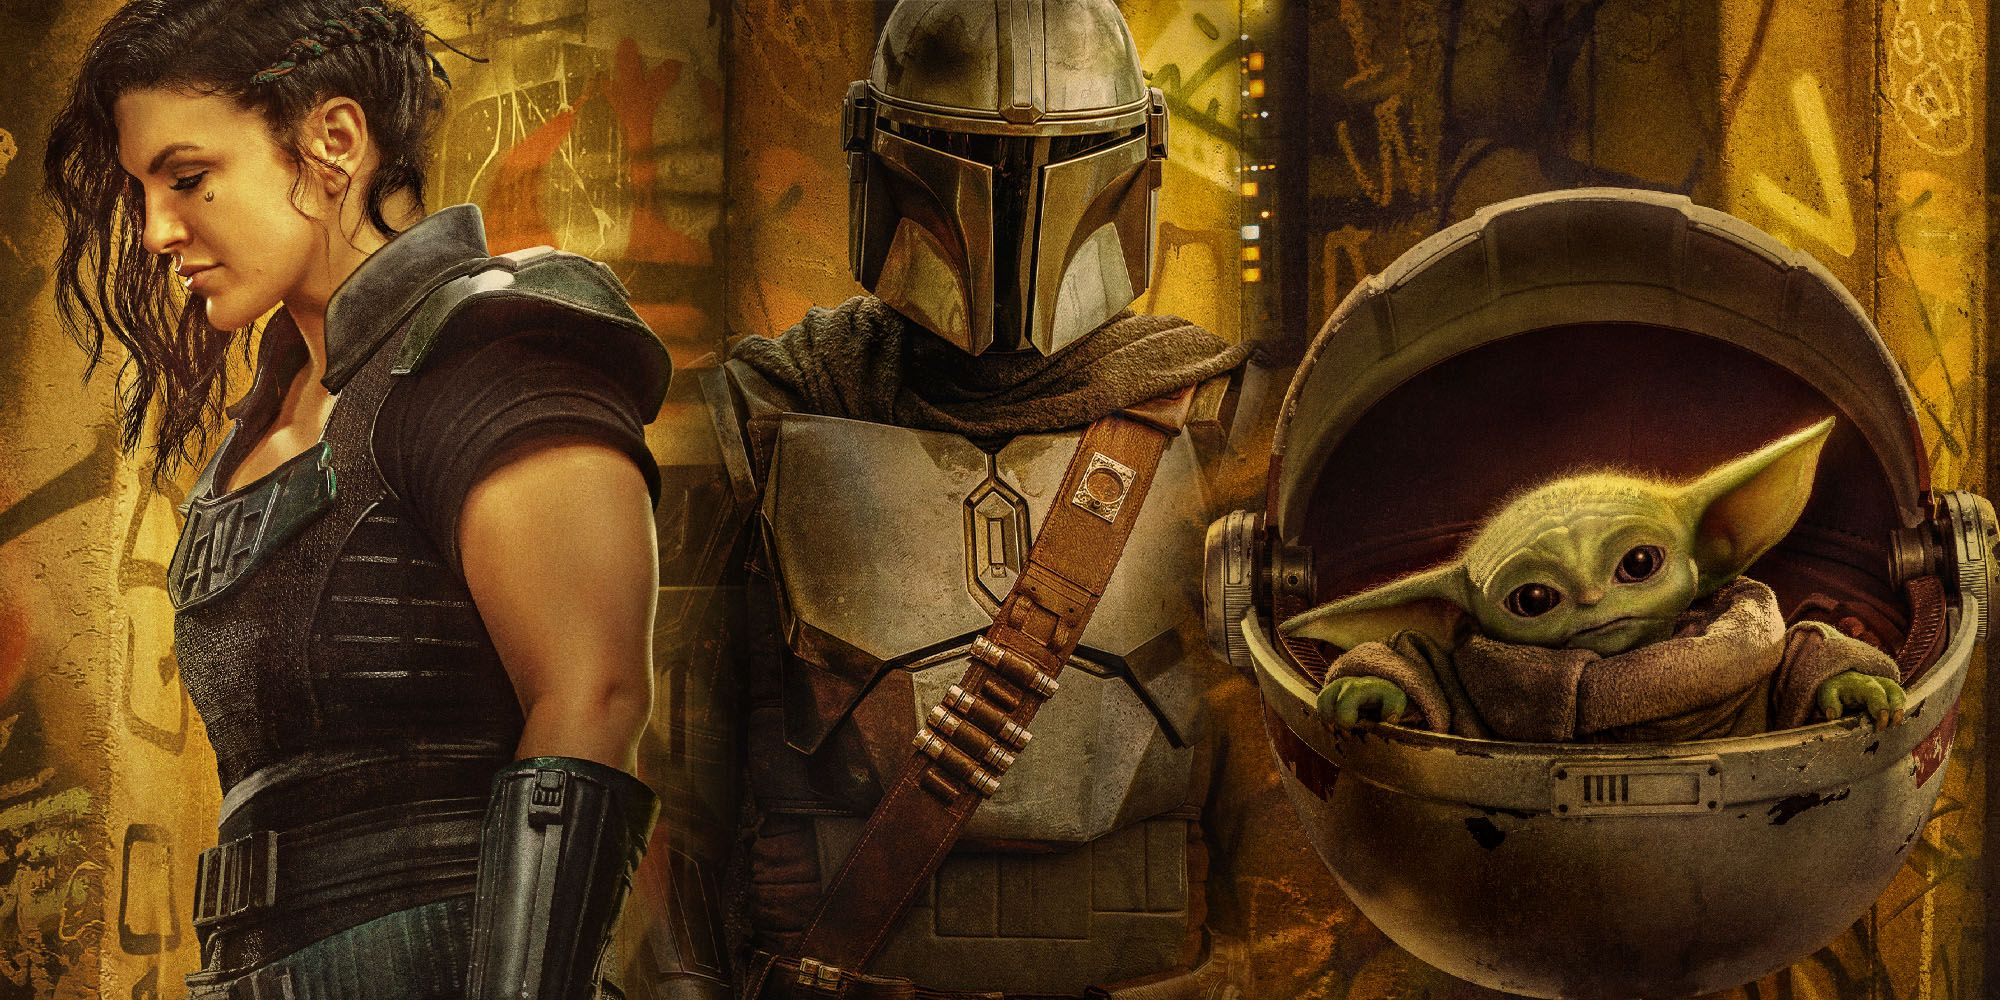 Every Star Wars Easter Egg In The Mandalorian Season 2 Posters